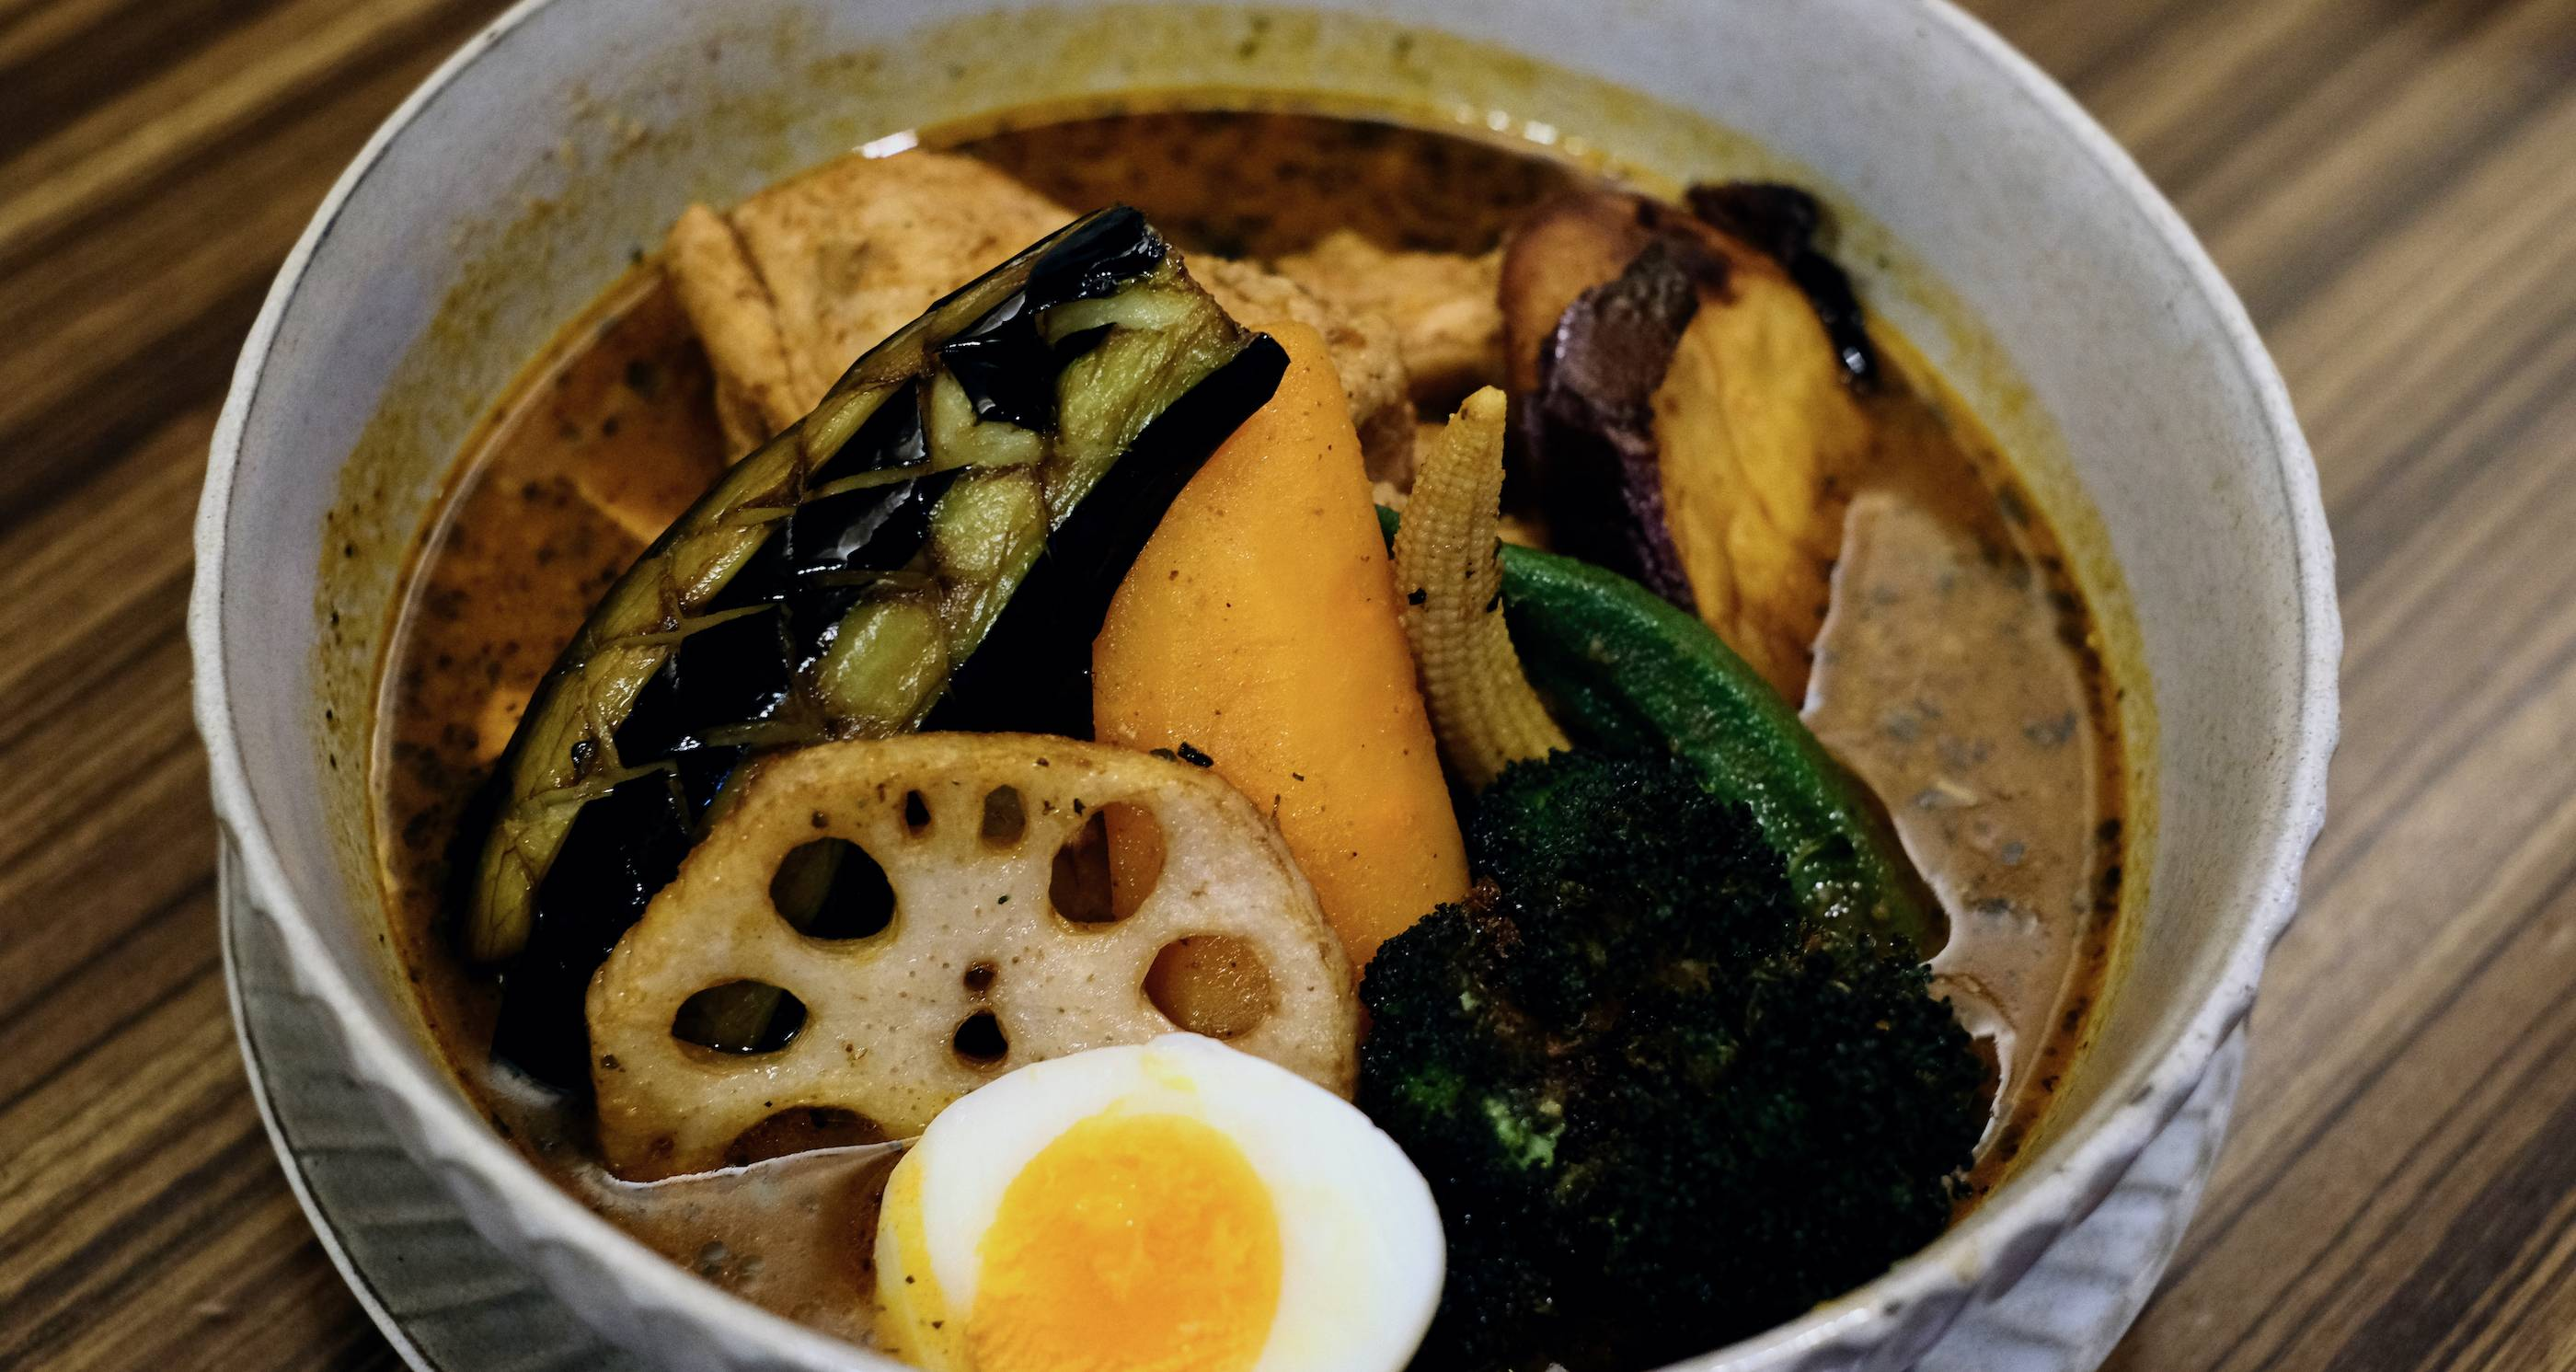 Oh, brother: Tokyo Rakkyo Brothers serves a solid soup curry with perfectly charred broccoli and sweet potato. | FLORENTYNA LEOW